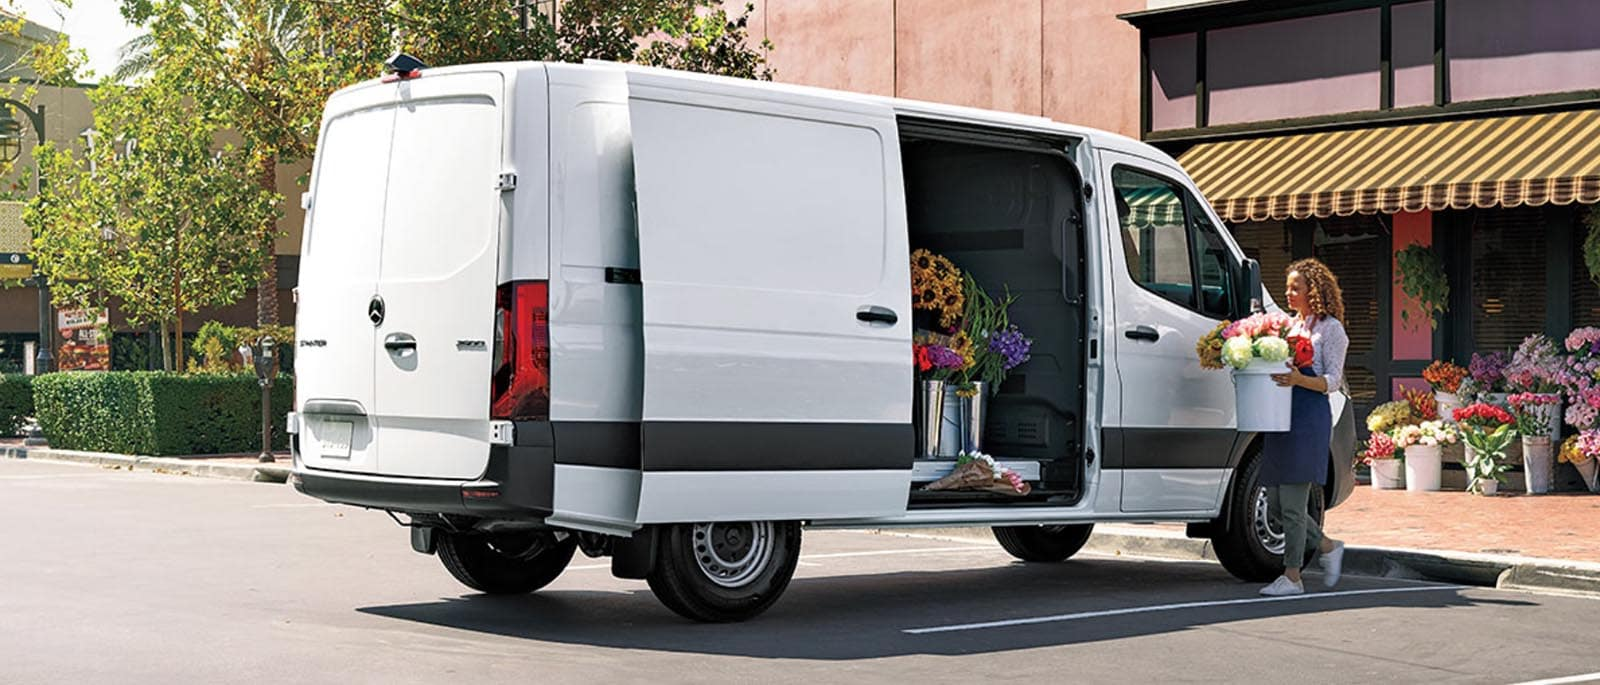 Sprinter Flower van